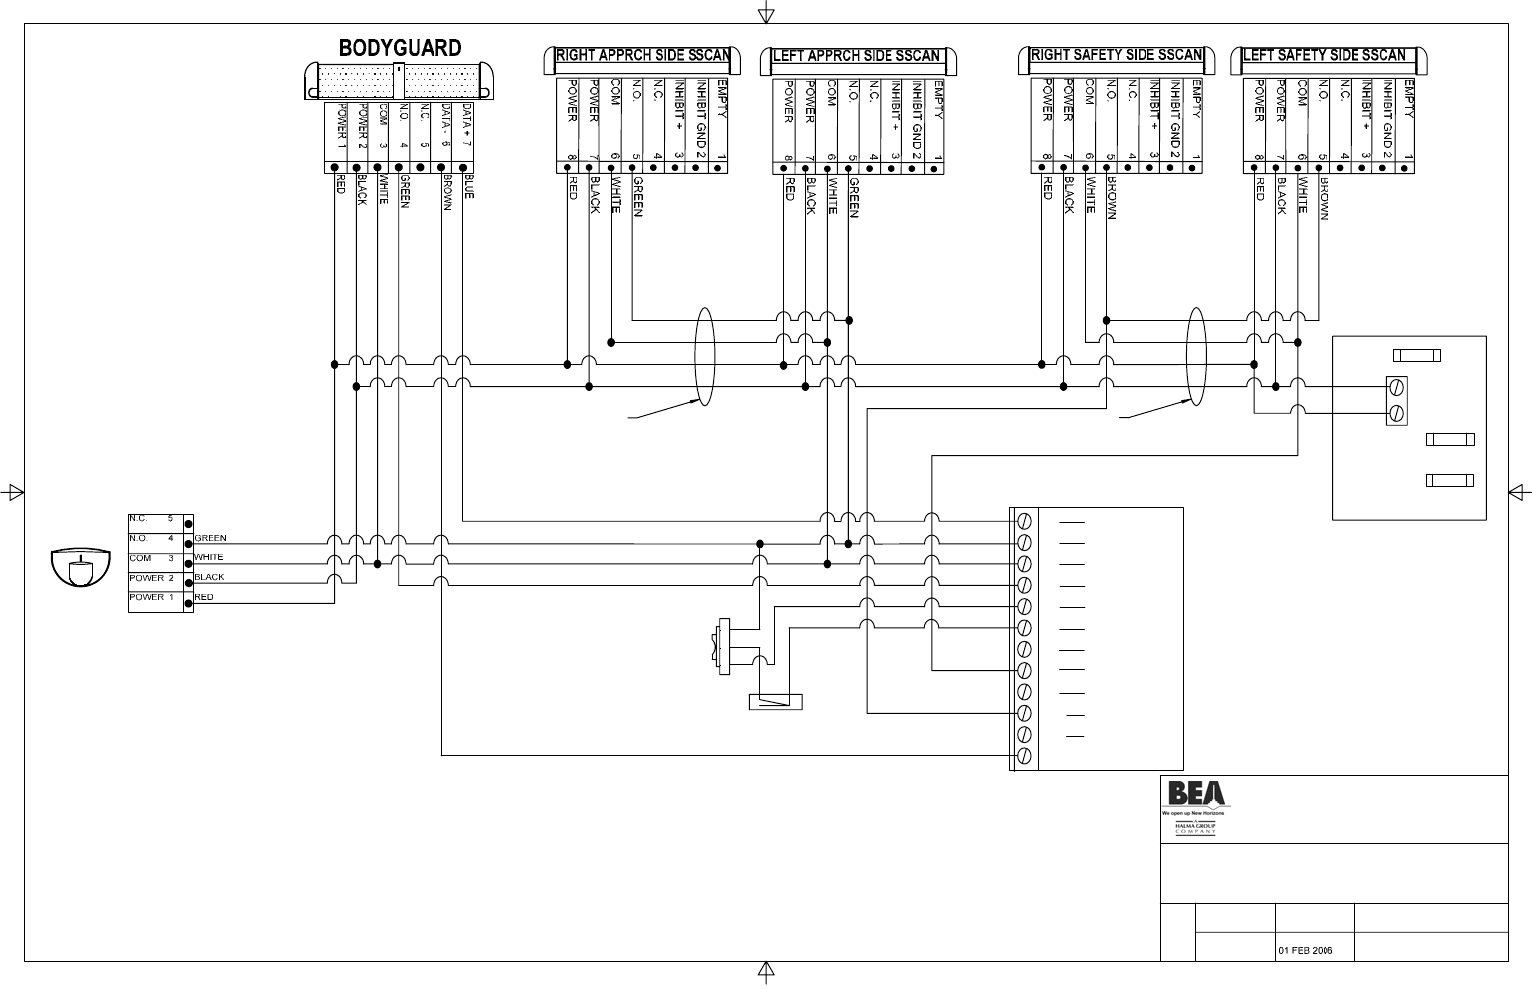 bg4 bea 80 0091 02, c2150 manual c4190 control, c3938 p s bea ixio wiring diagram at eliteediting.co